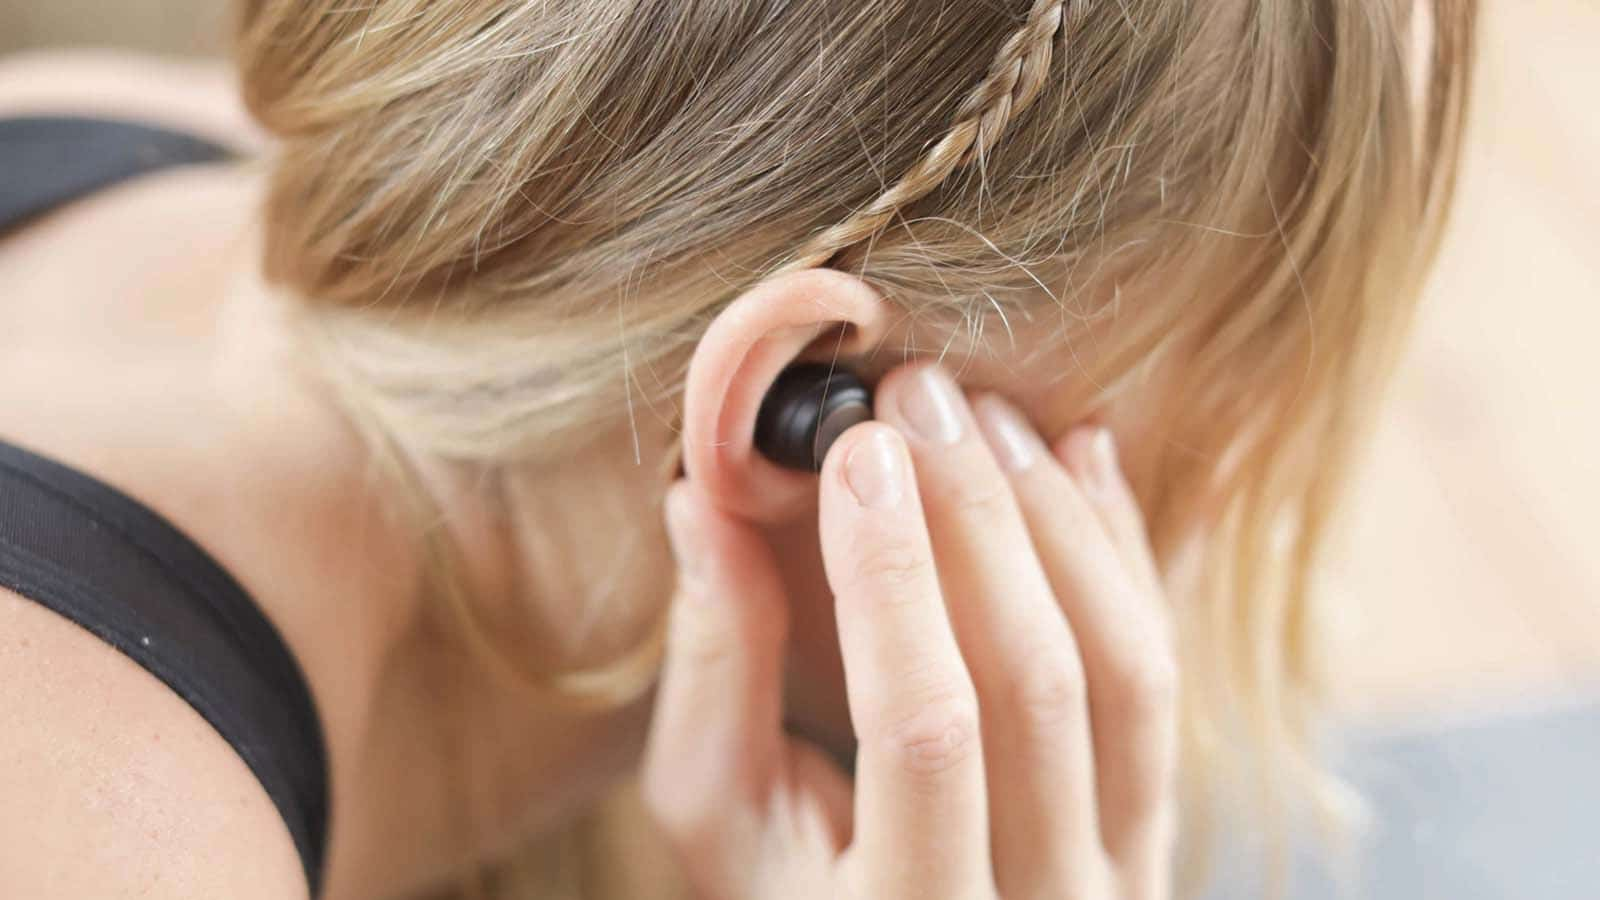 headphones in ear during a workout